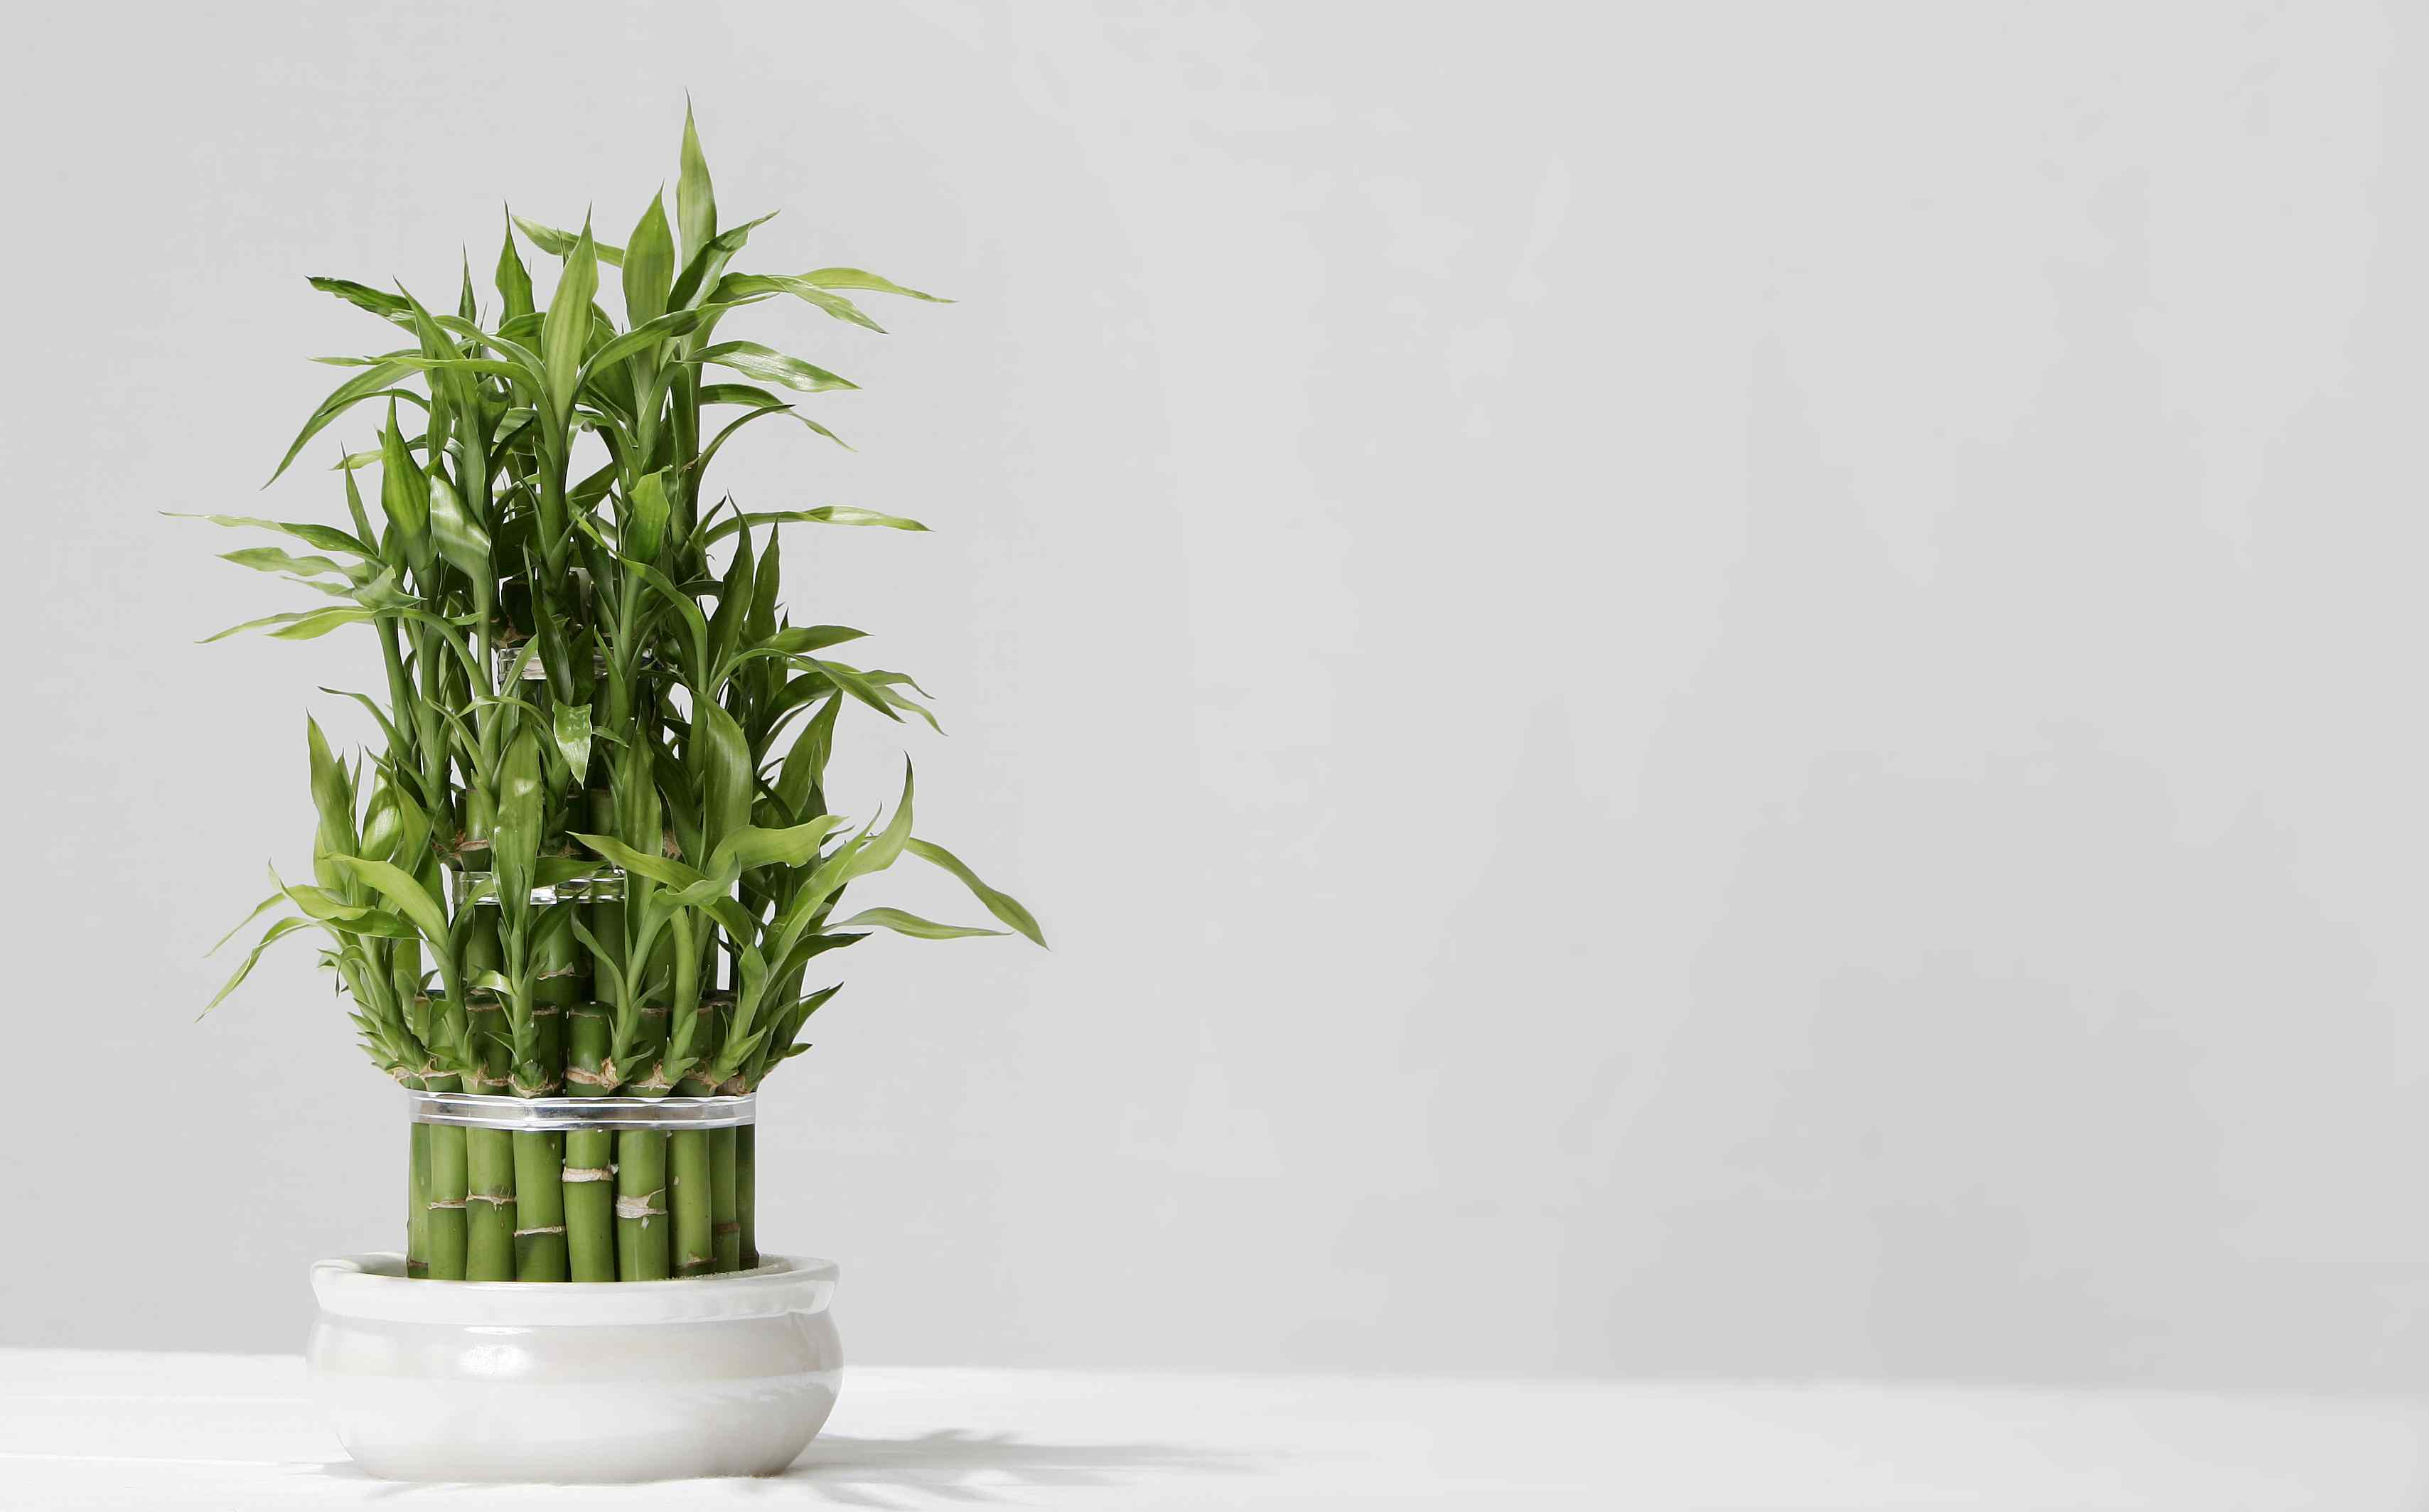 Lucky bamboo plant growing in pot